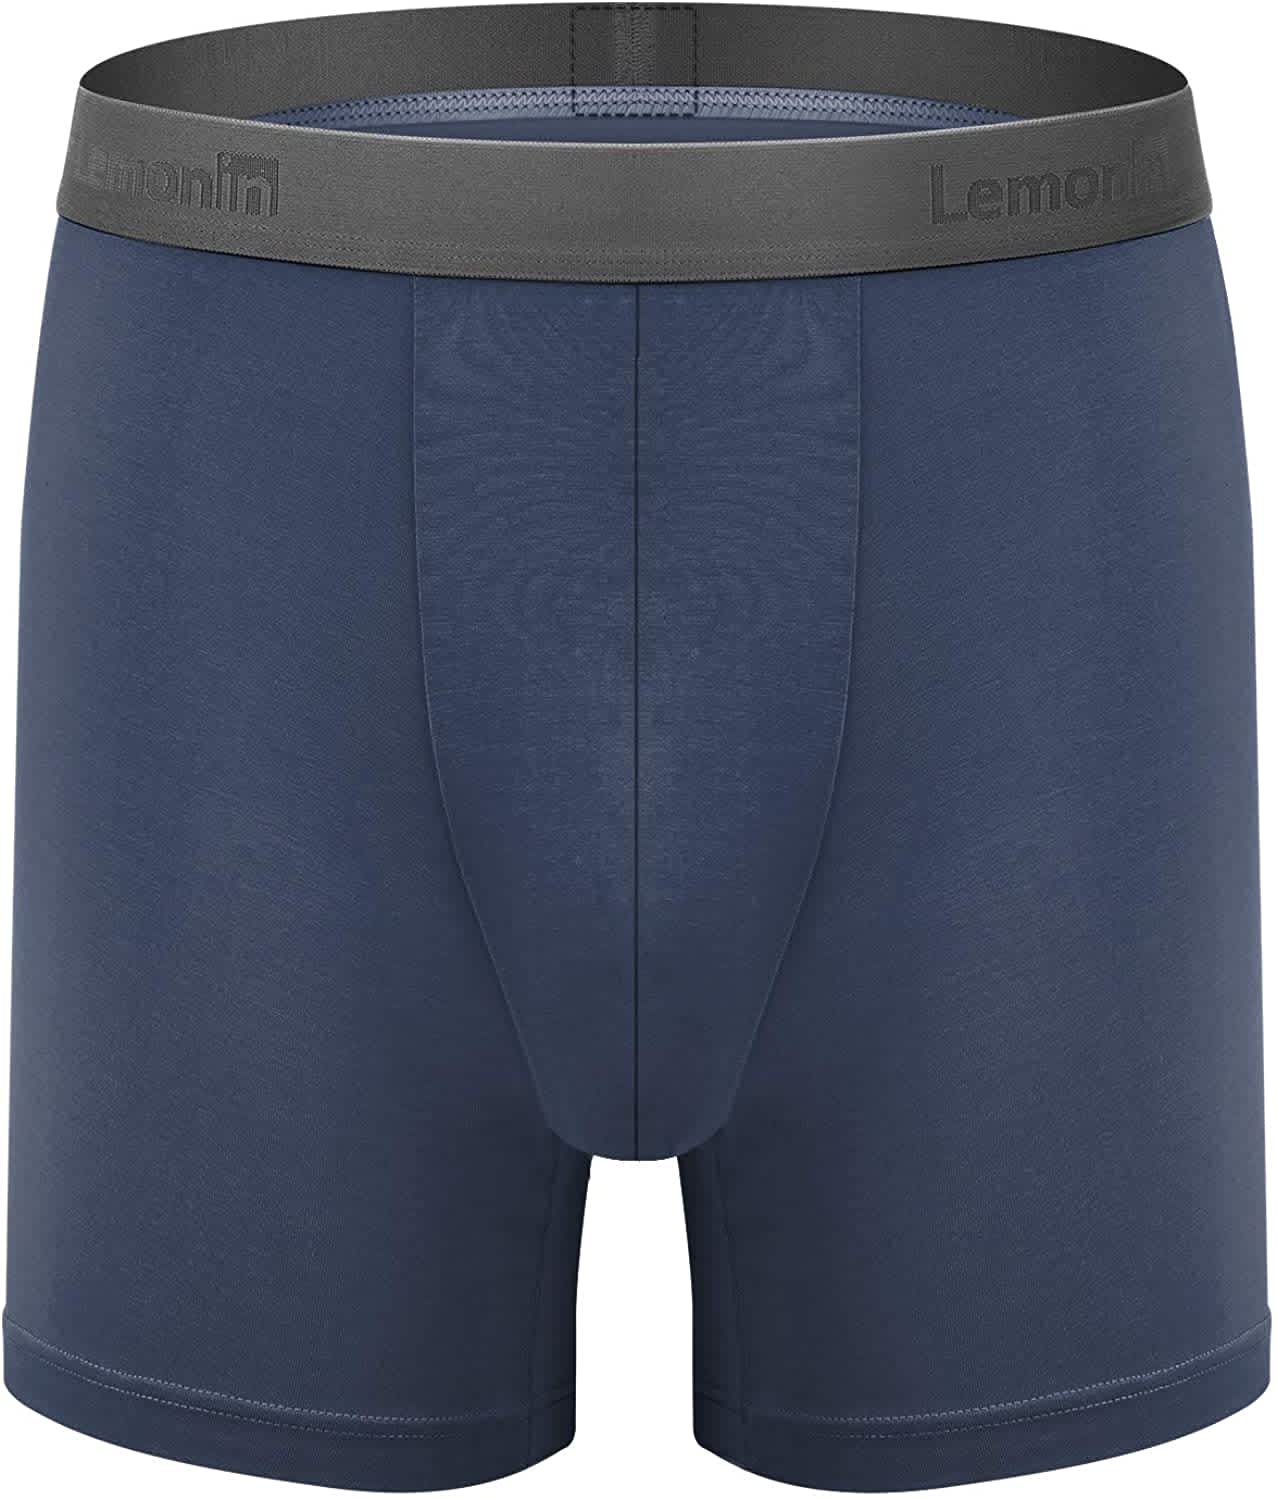 "Lemonin Men's 301Pro 6""Boxer Briefs"